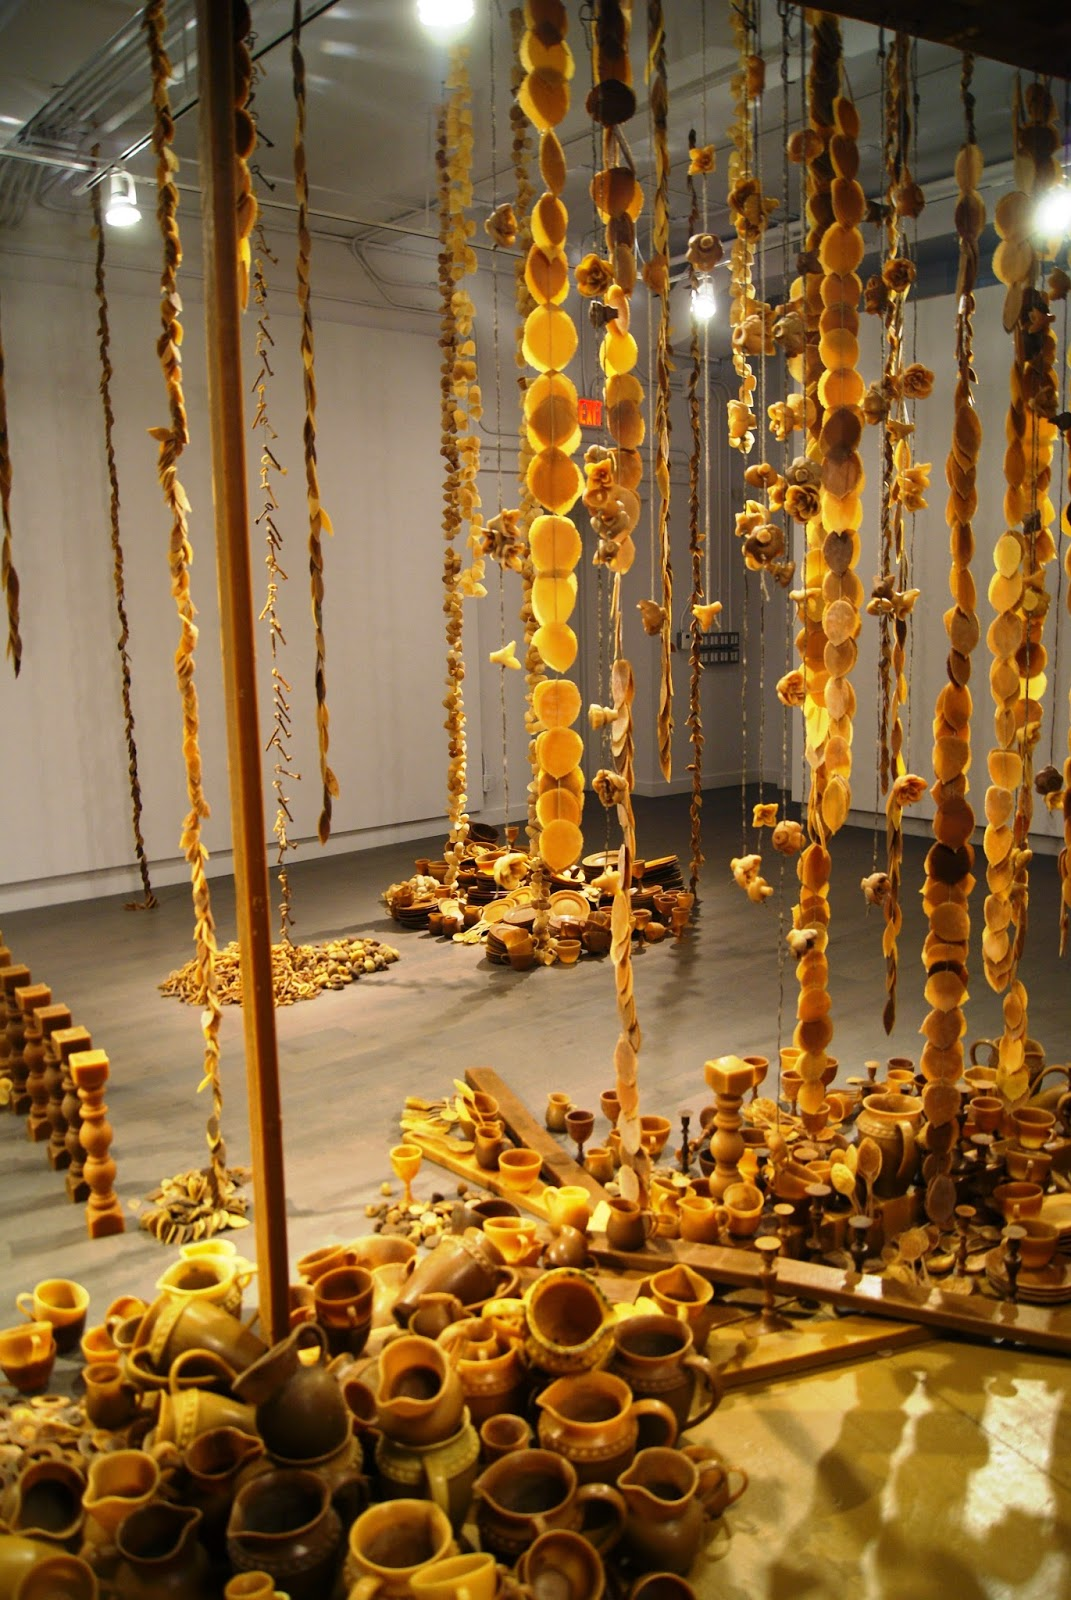 Vanitas Beeswax Art Installation by Penelope Stewart. at Koffler Gallery in Artscape Youngplace, Toronto, Culture, Exhibit, Exhibition, Bees, Beehive, Stiil life, Ontario, Canada, Melanie_ps, The Purple Scarf